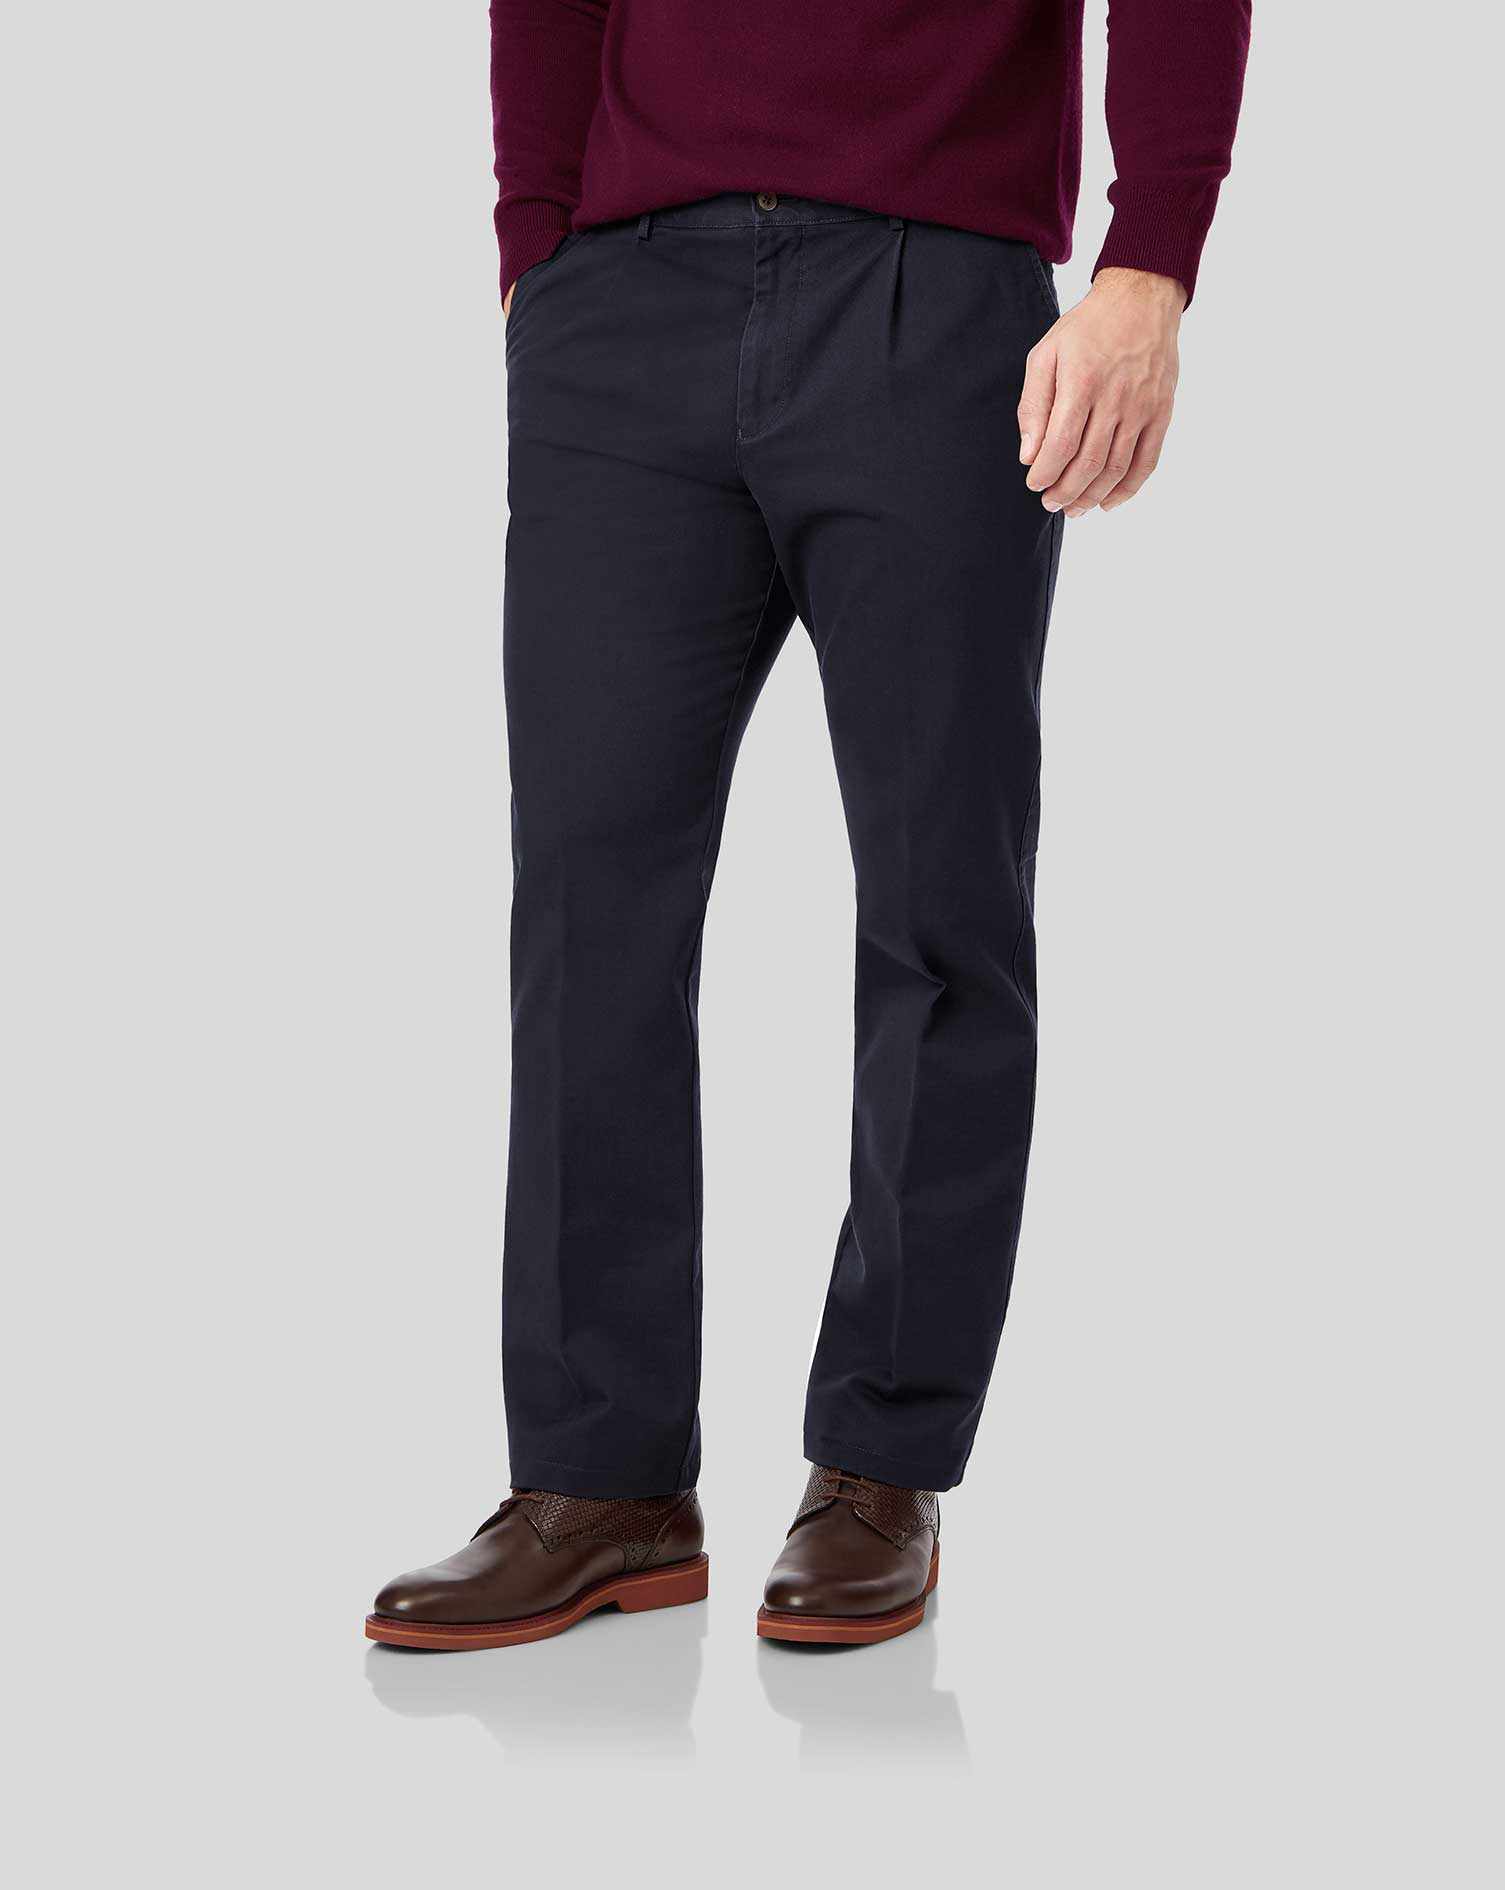 Cotton Navy Flat Front Soft Washed Chinos